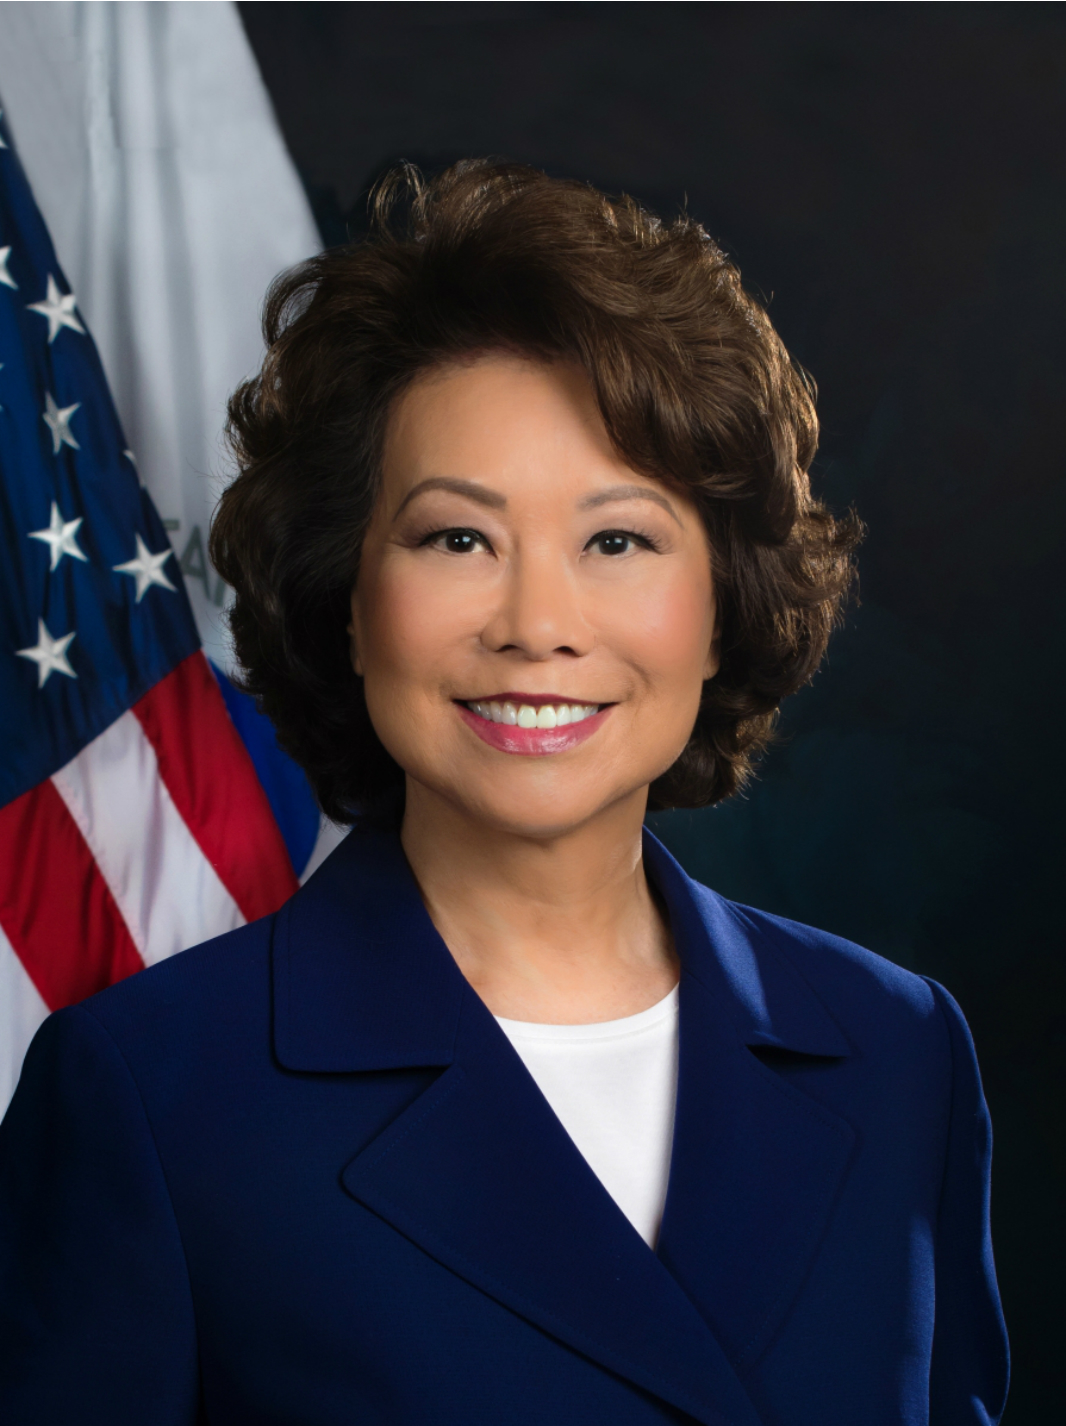 Photo of Secretary Elaine L. Chao - Secretary of Transportation